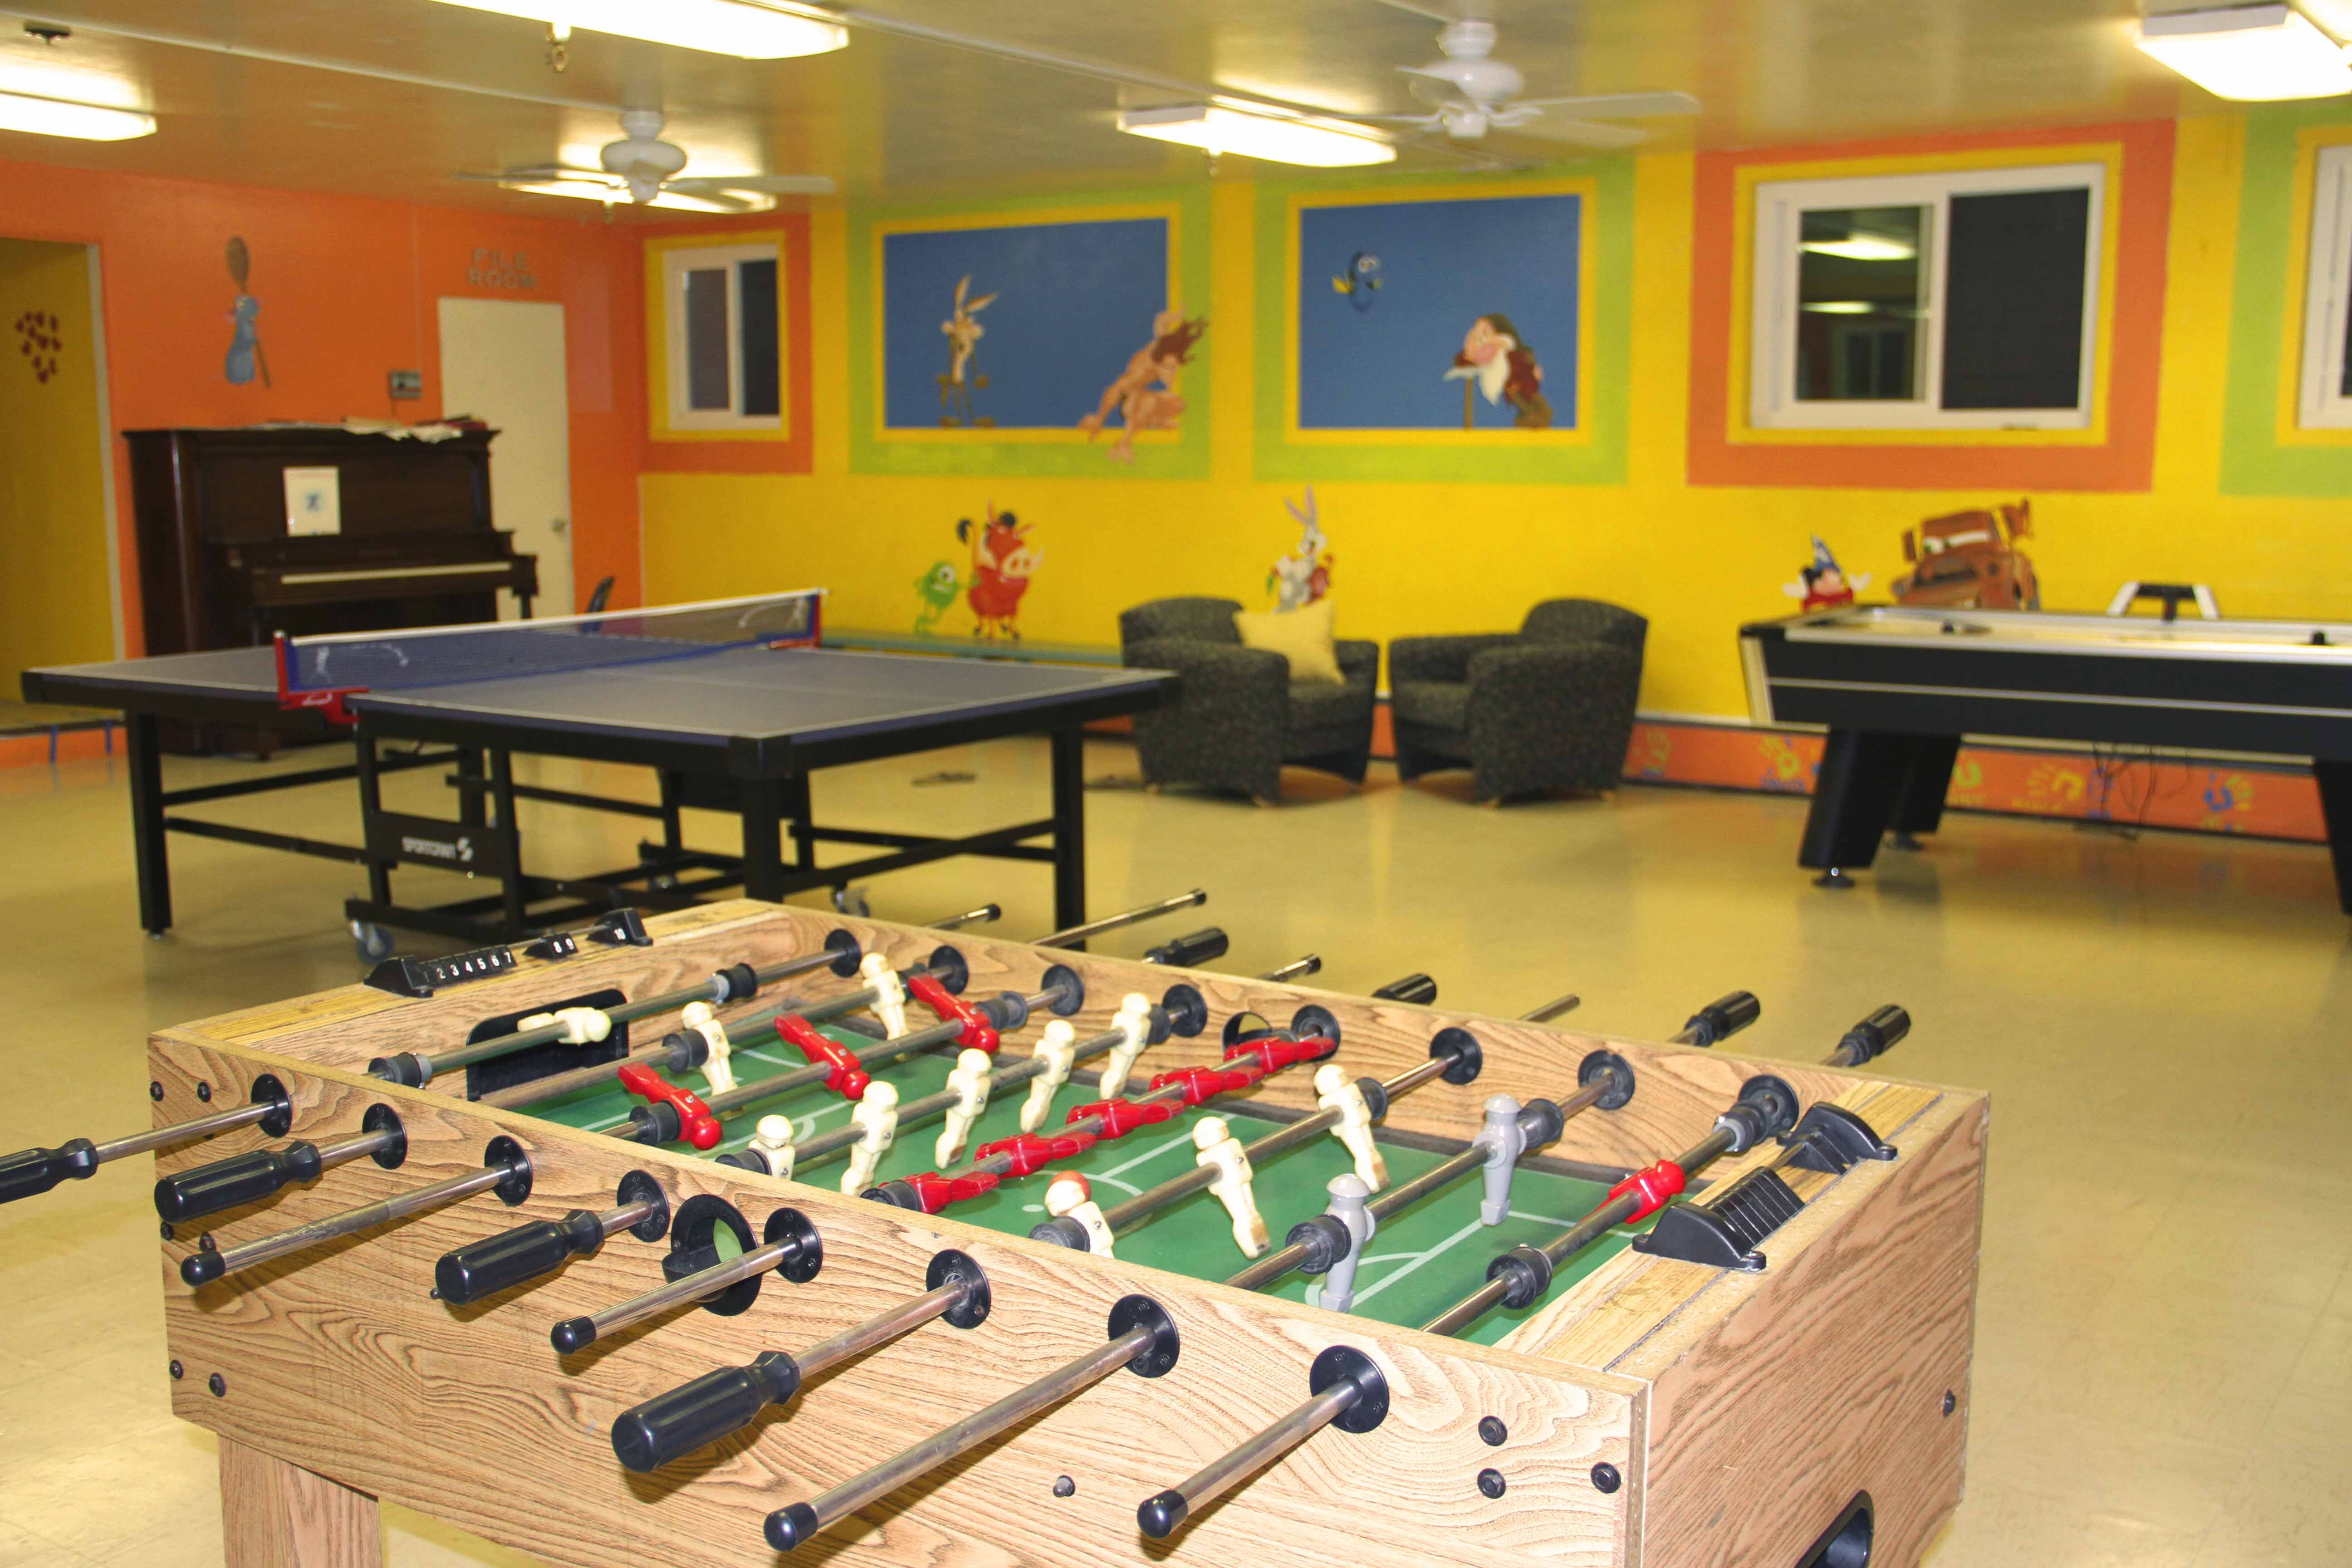 Many Rec Room Es Receive A Notoriously Masculine Design With Heavy Leather Chairs And Dark Curtains But The Addition Of Wood Recreationalroom